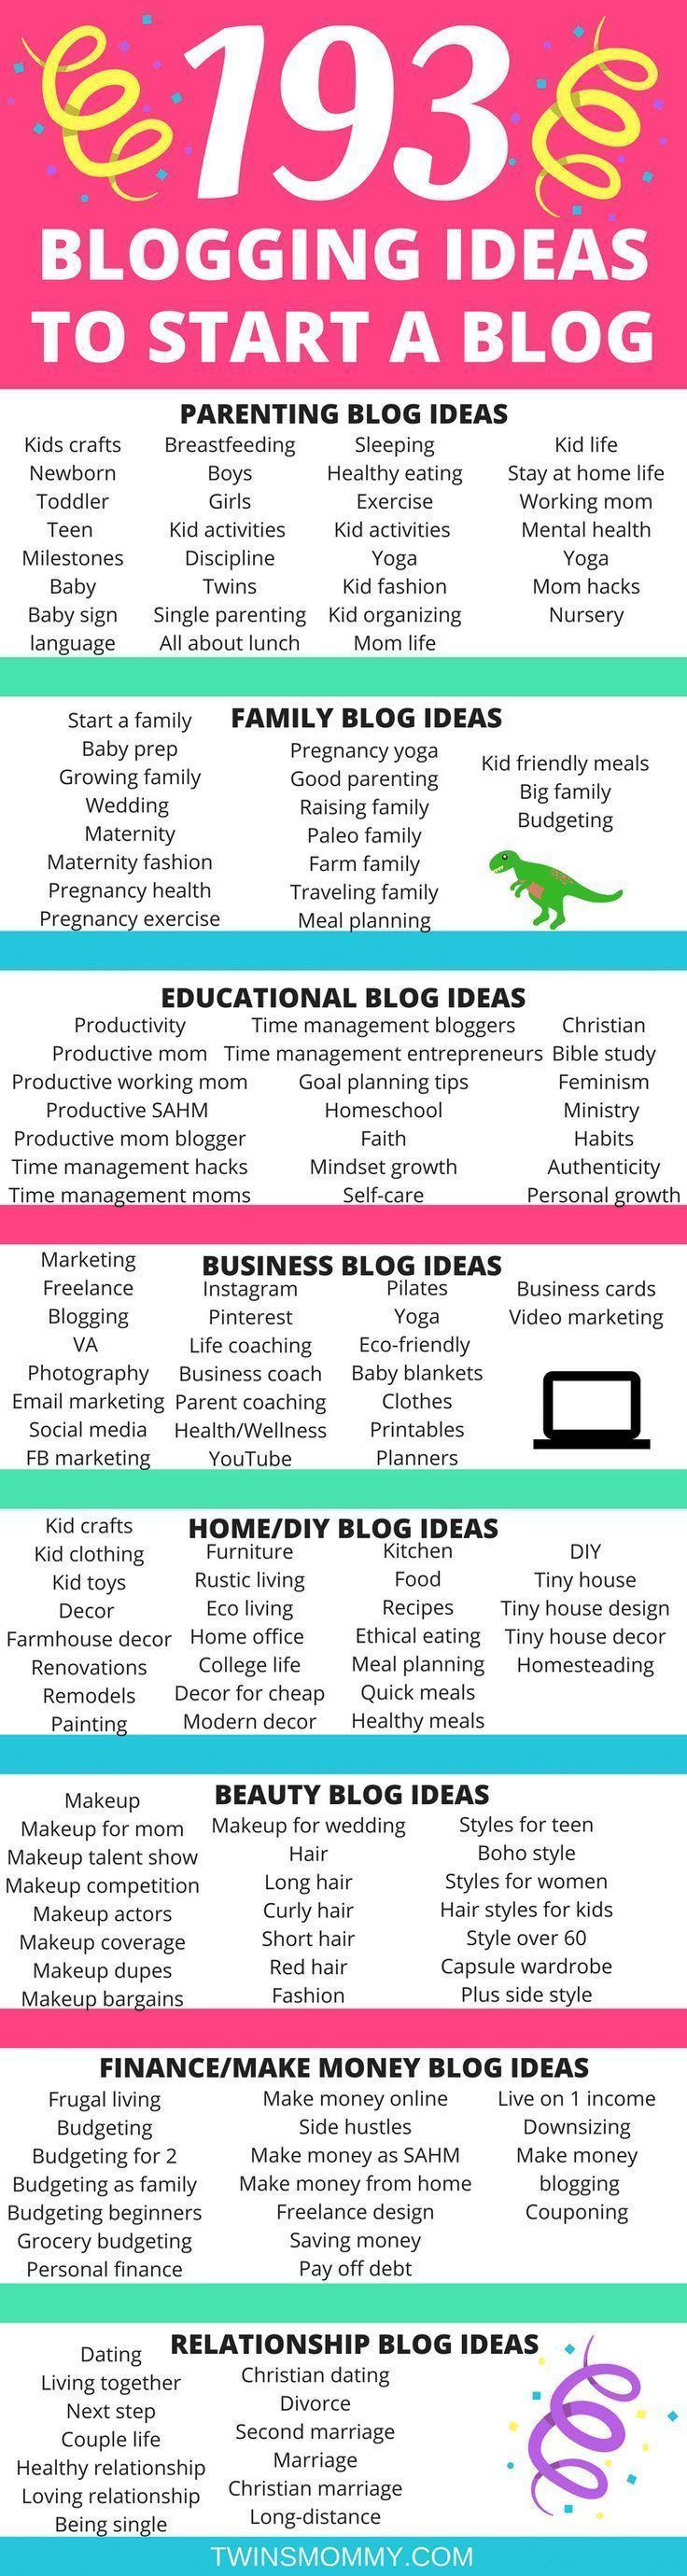 193 Blogging Ideas For Starting a Blog – G.R.I.T.S. by Mimi